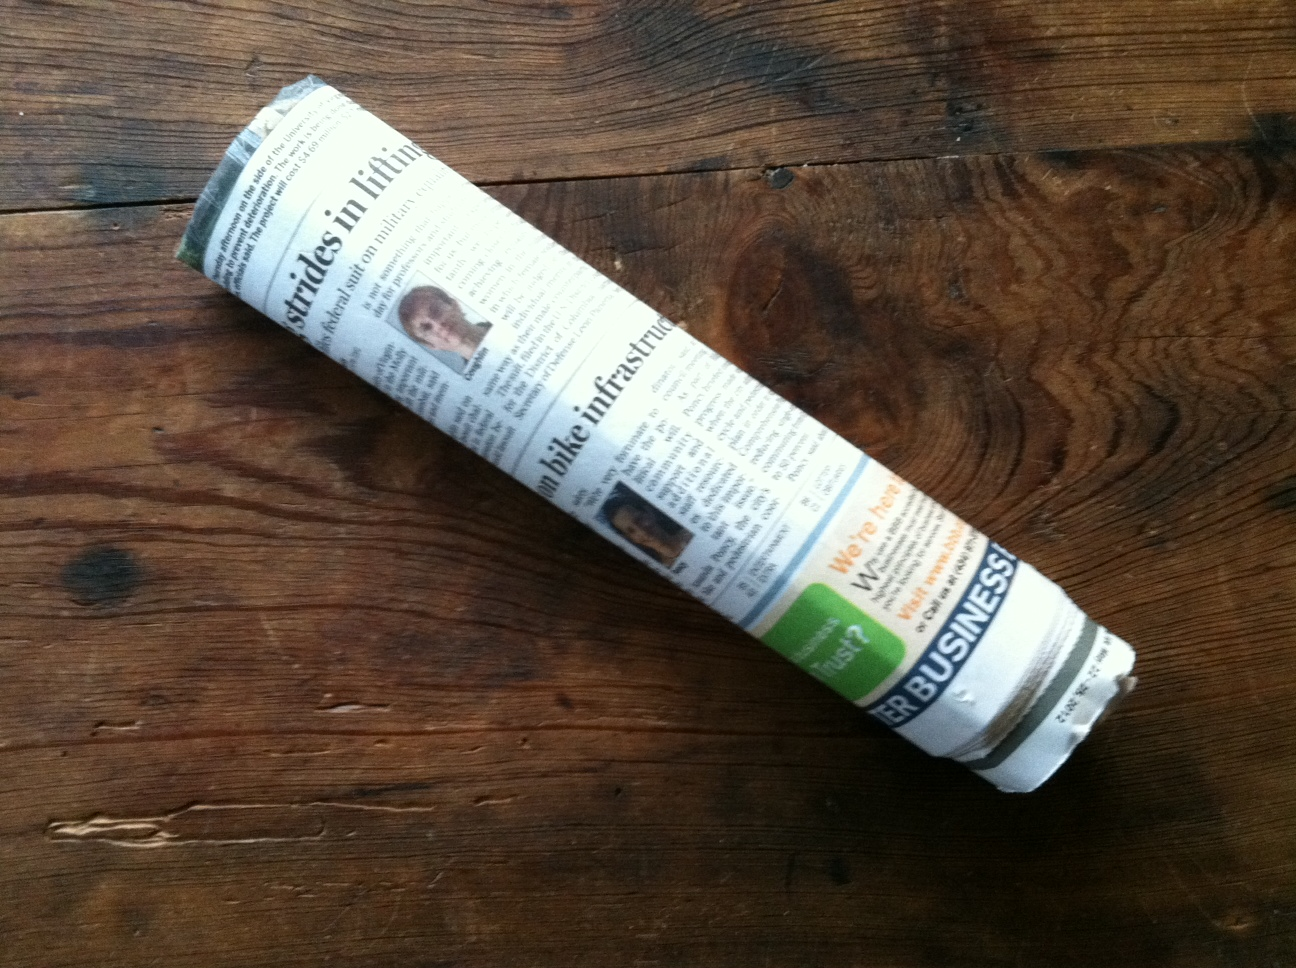 How to fold a newspaper, by Herm – Marissa Hermanson